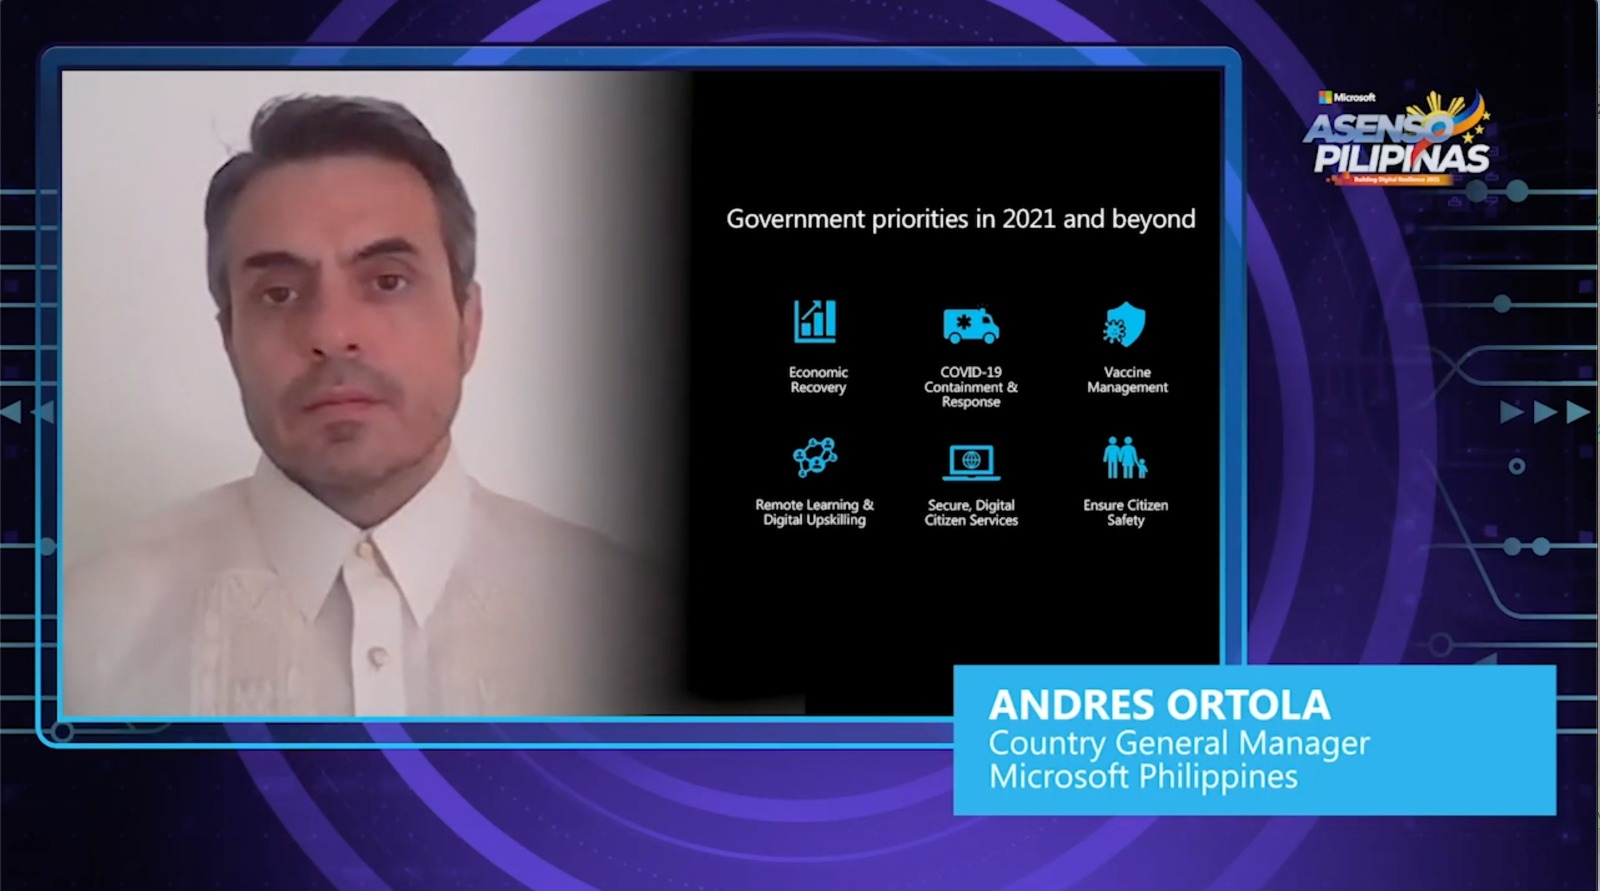 Microsoft Philippines Country General Manager